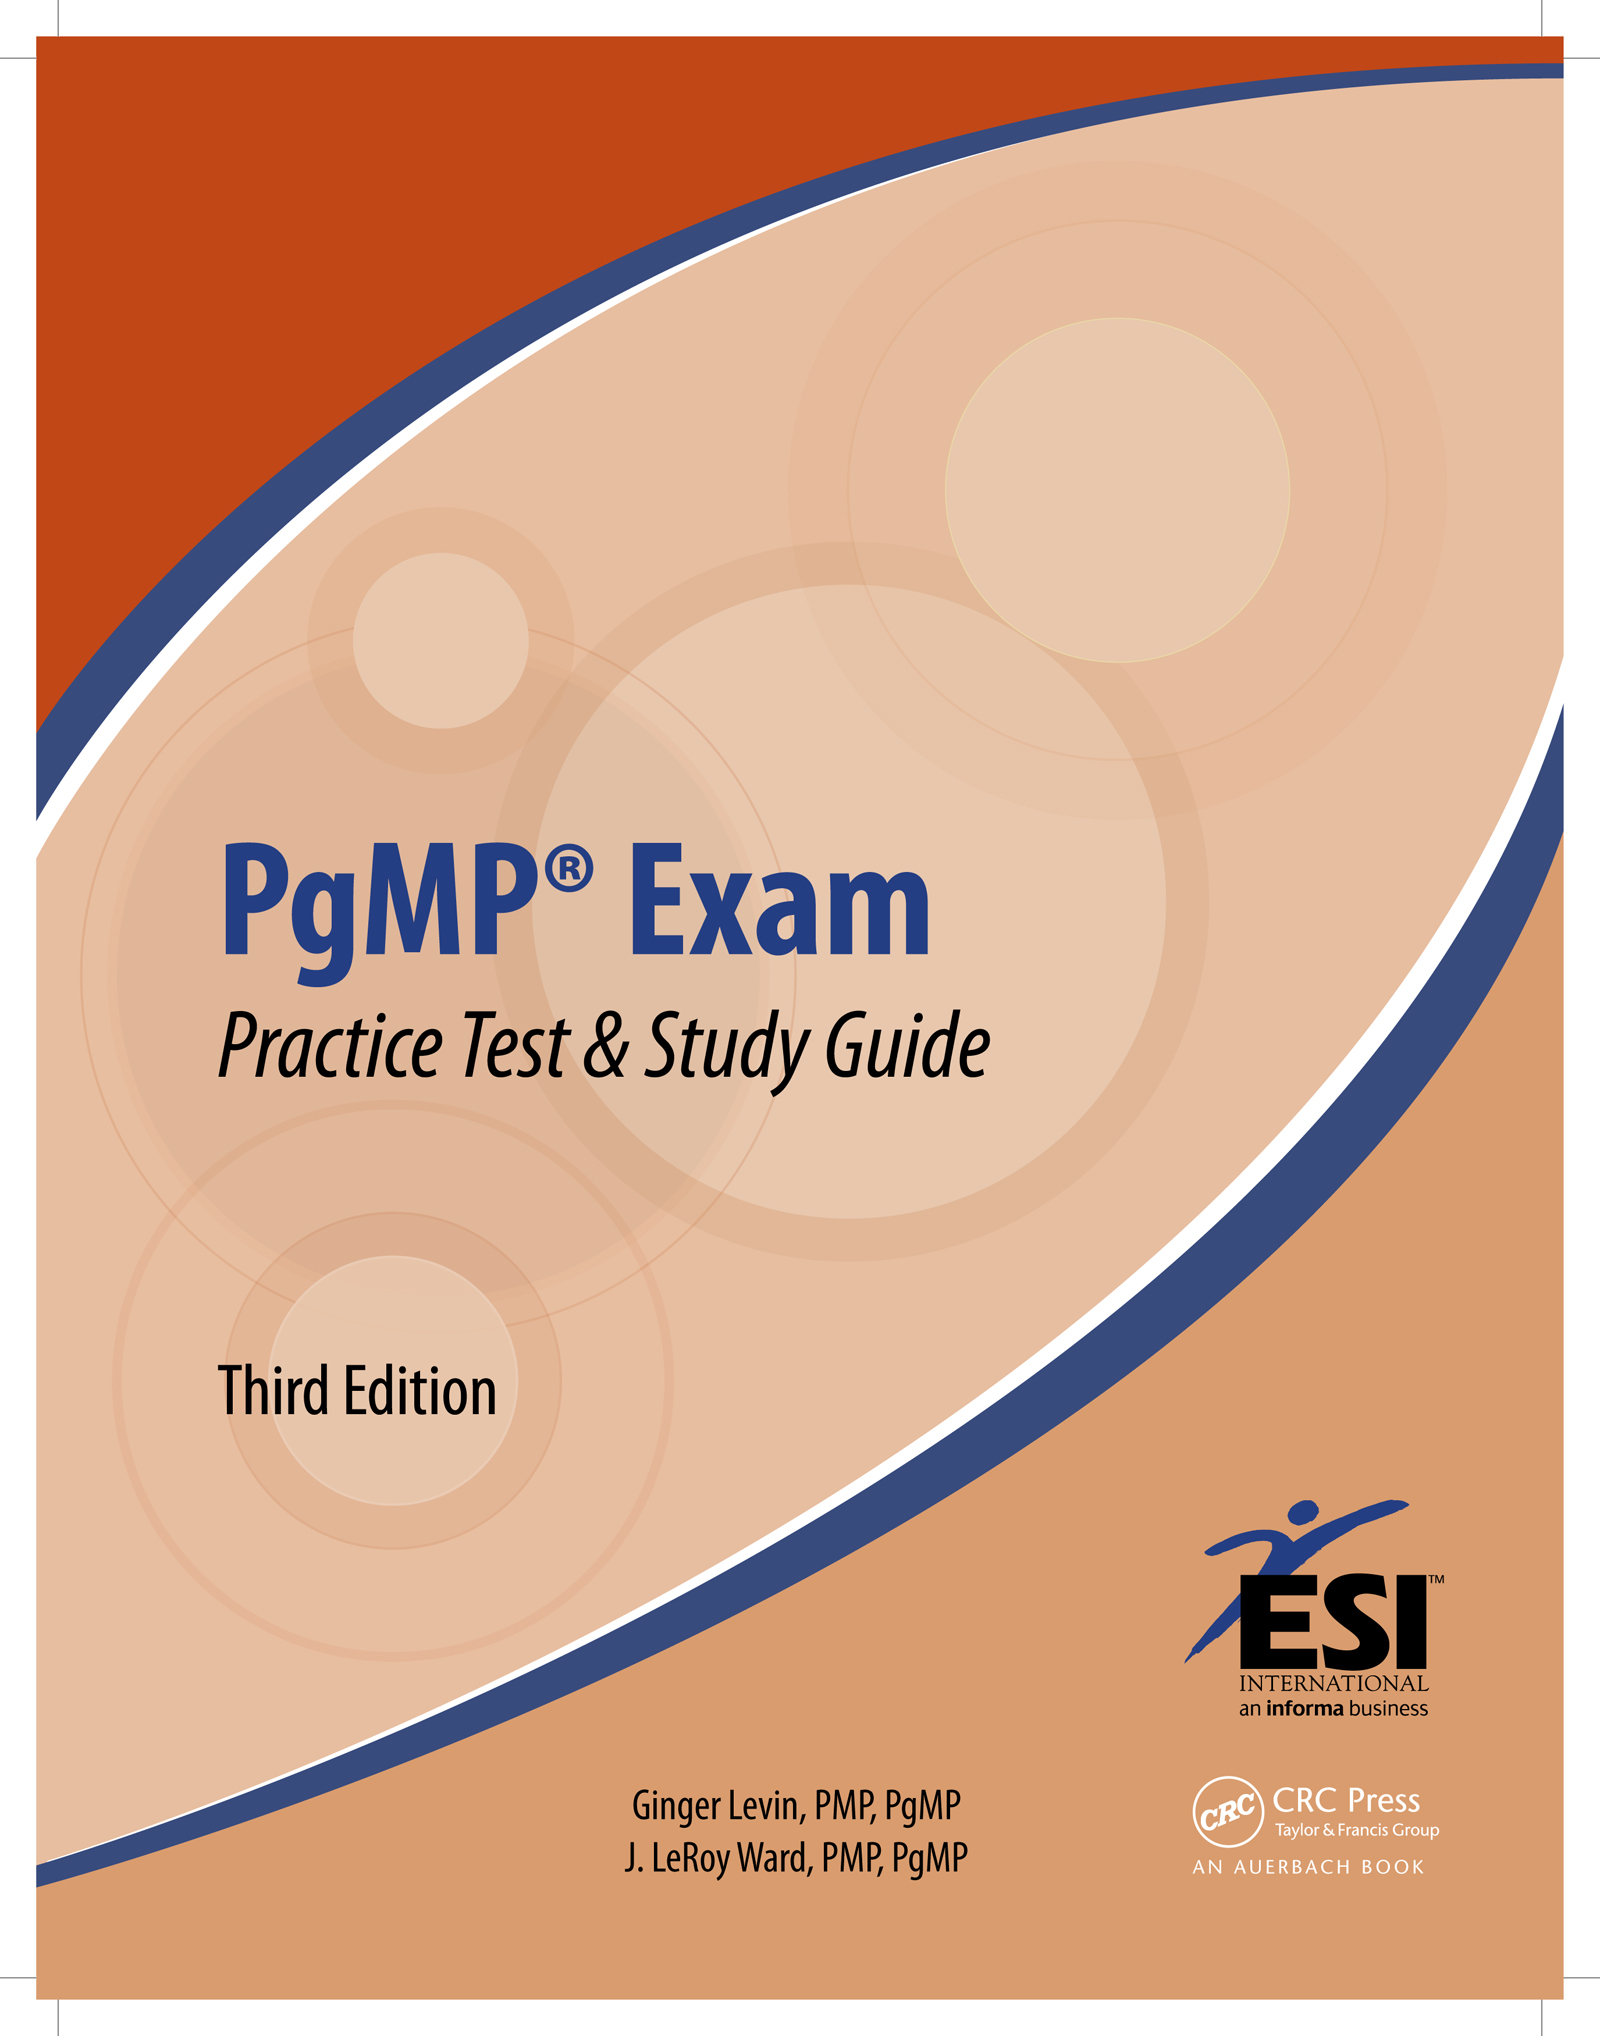 Download Ebook PgMP Exam Practice Test and Study Guide (3rd ed.) by CRC Press Pdf